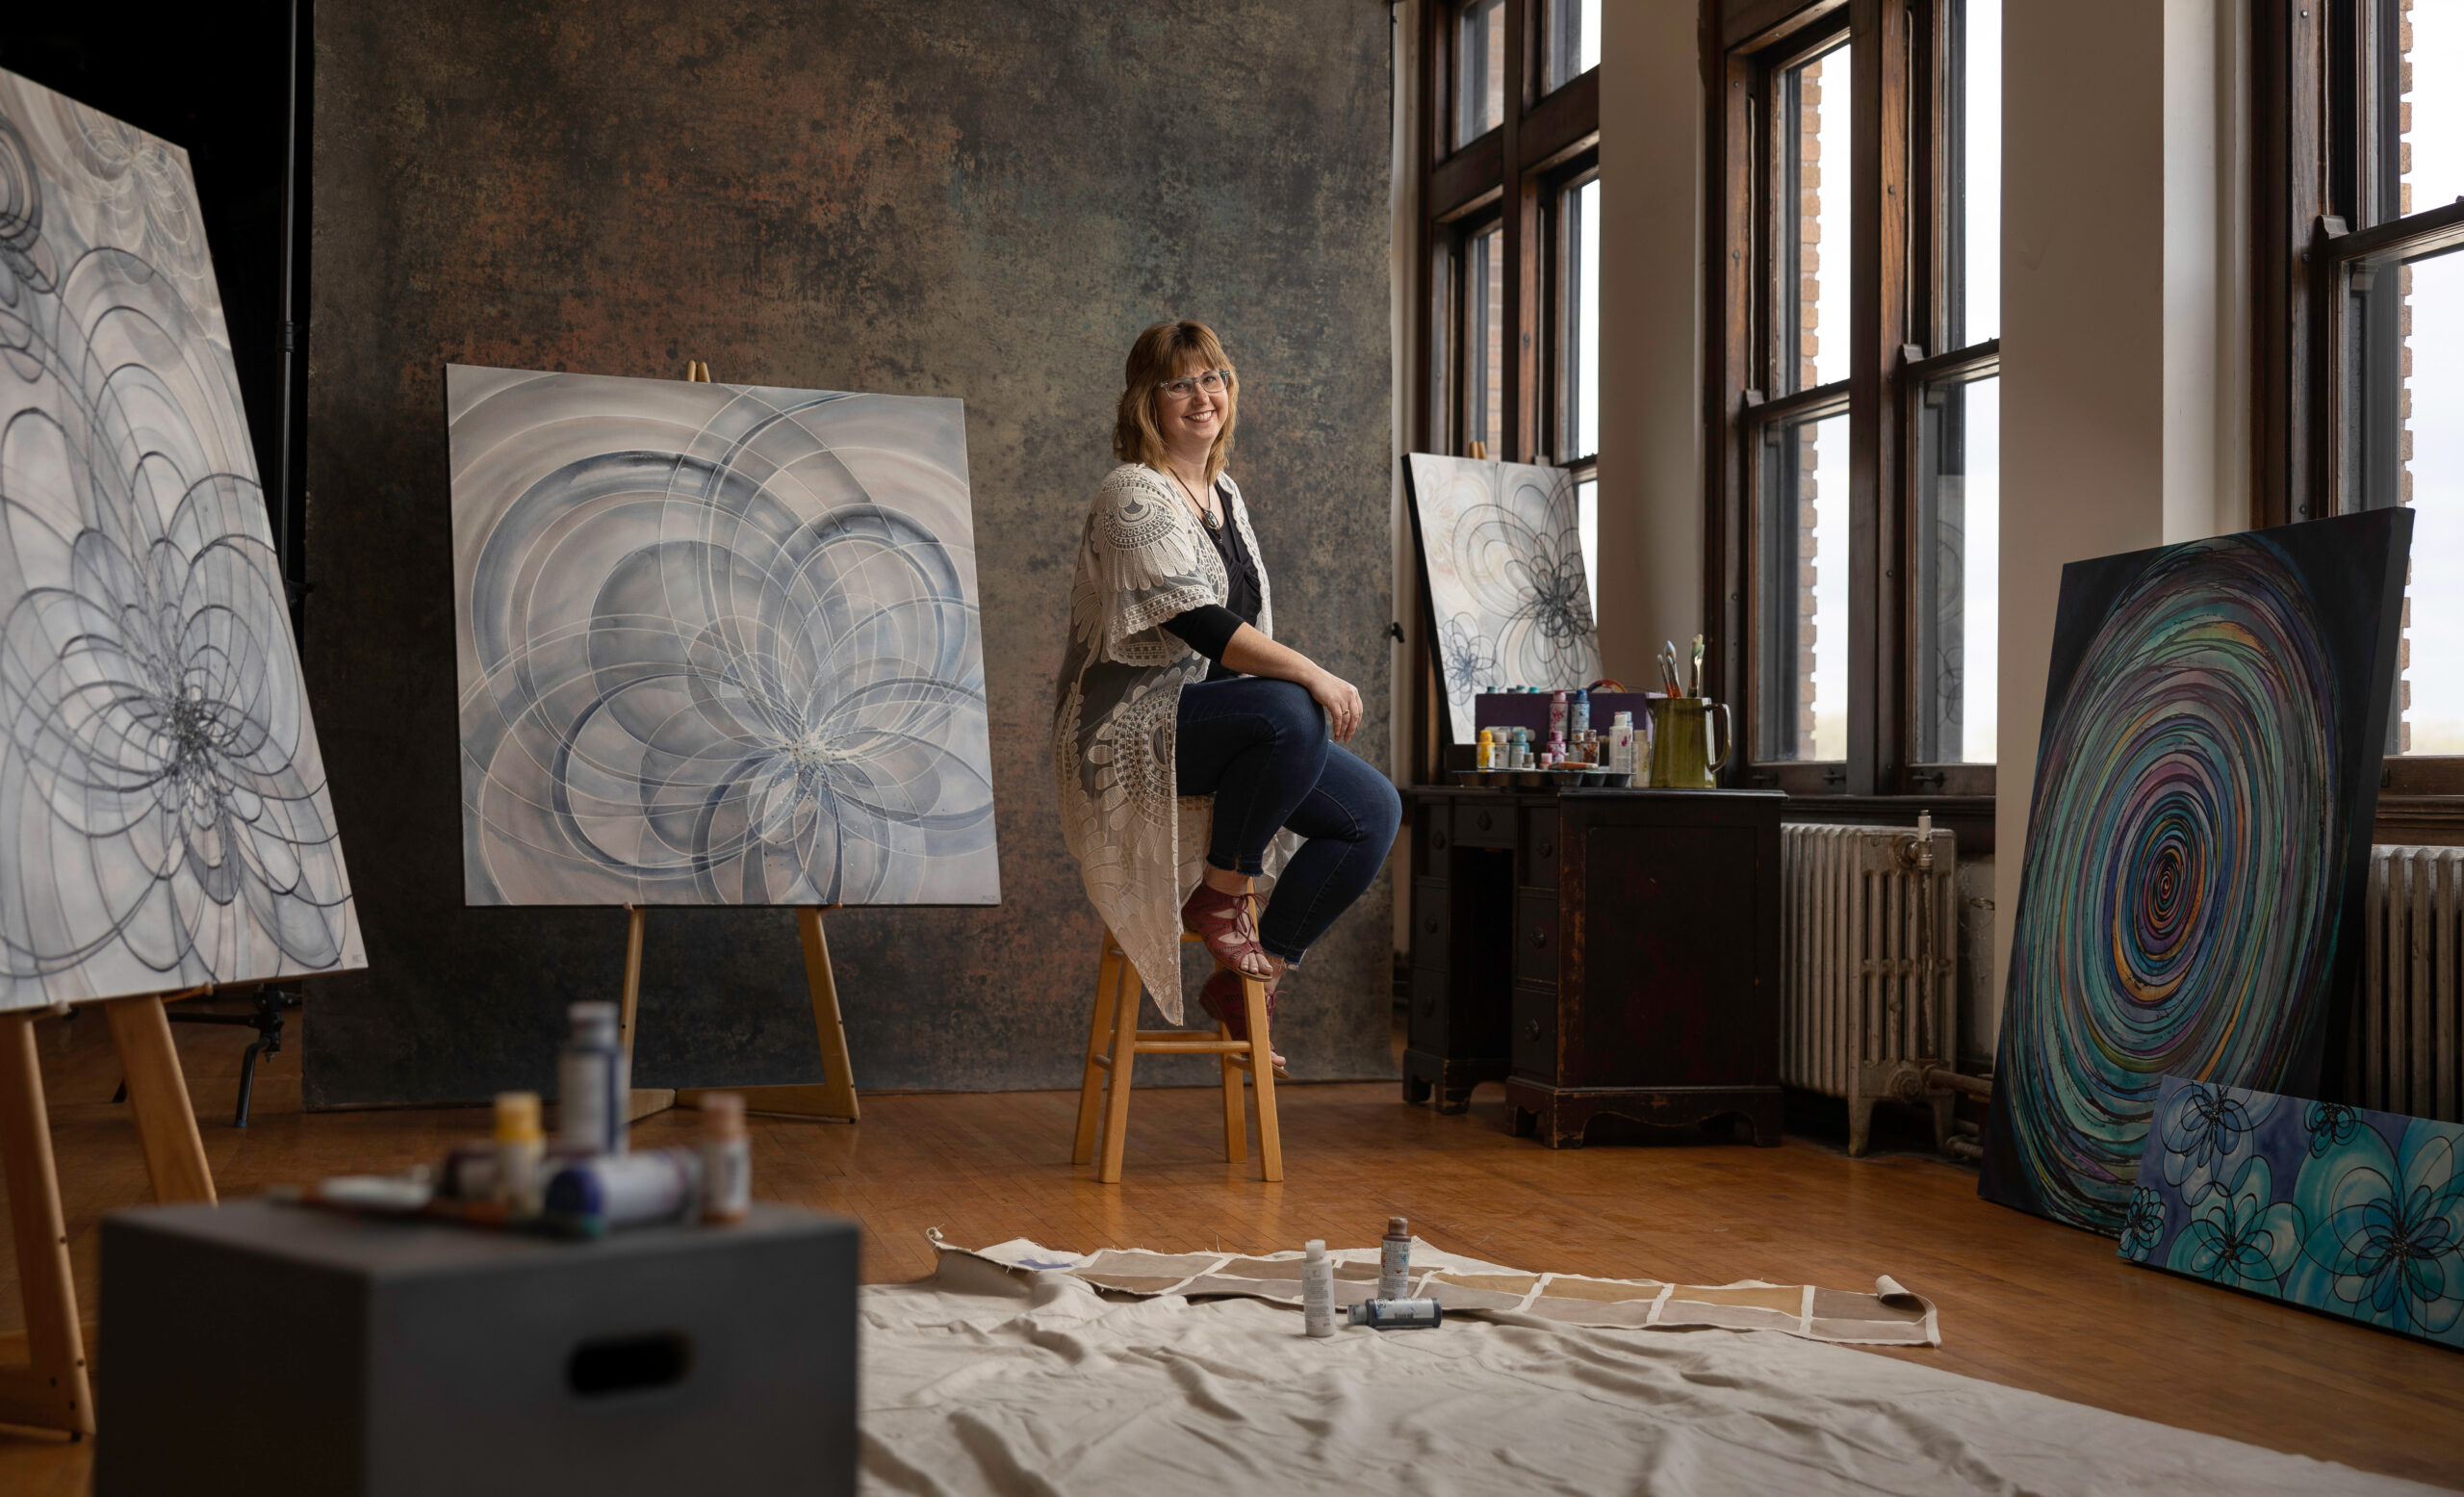 Artist Melynda Van Zee in studio surrounded by large paintings.